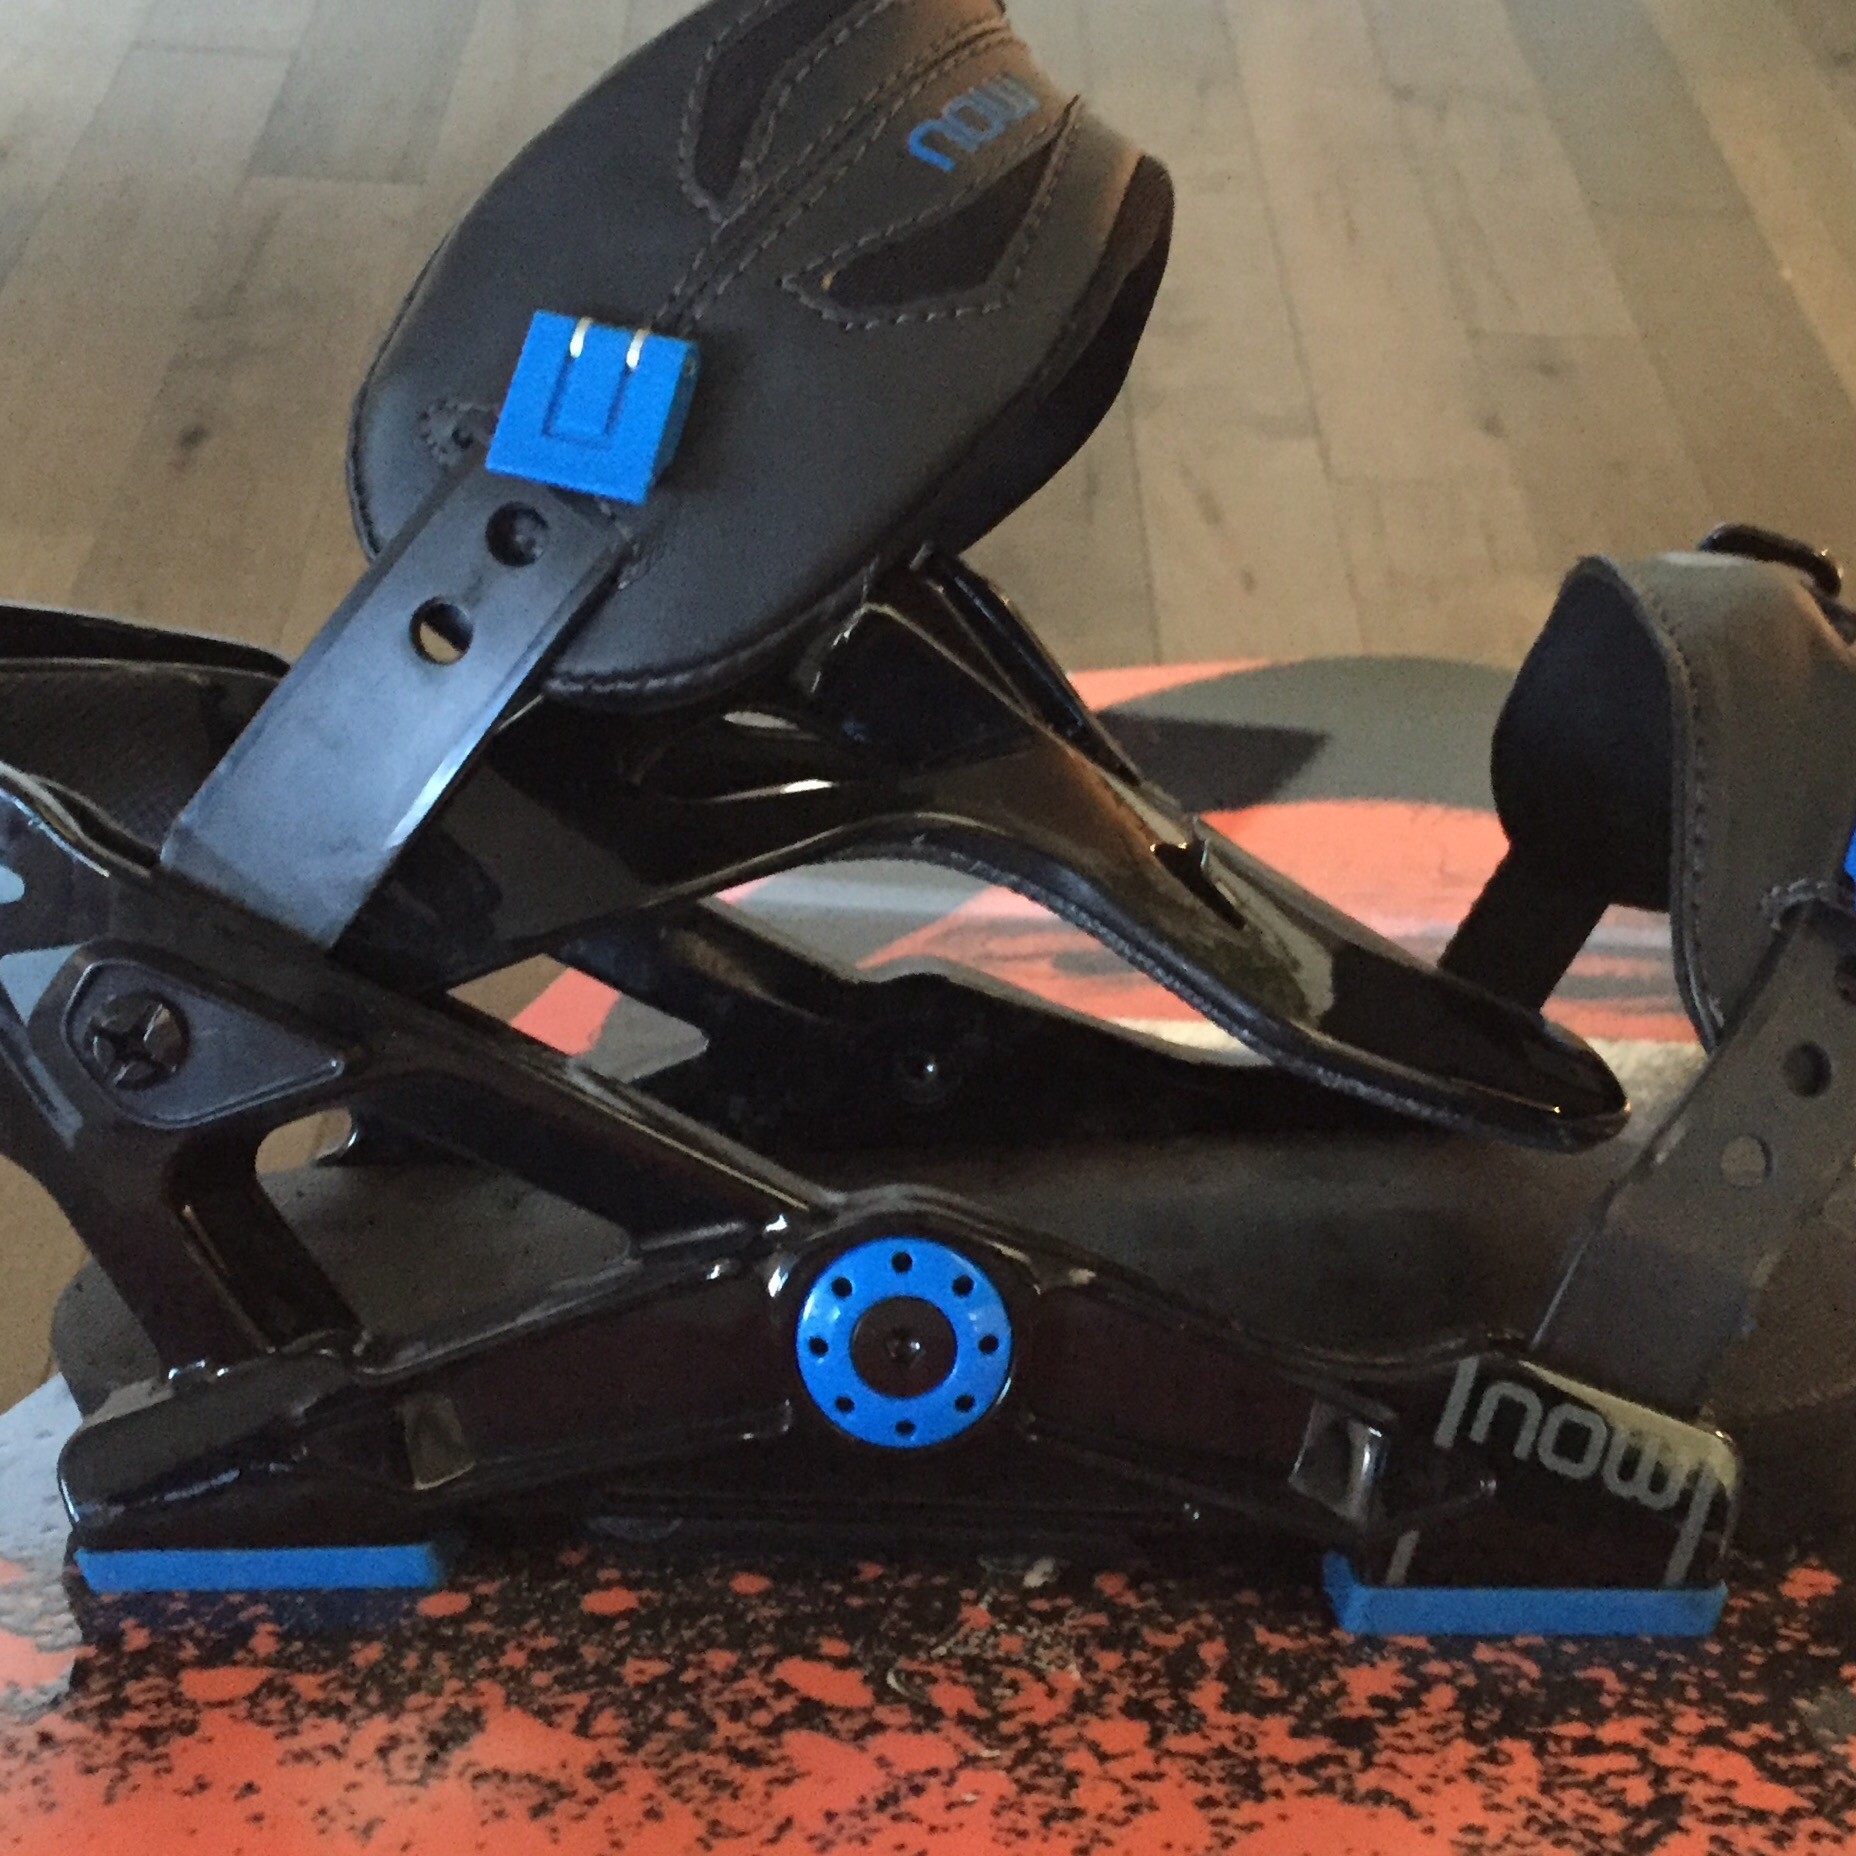 Review: Yes The Greats Snowboard And Now IPO Bindings